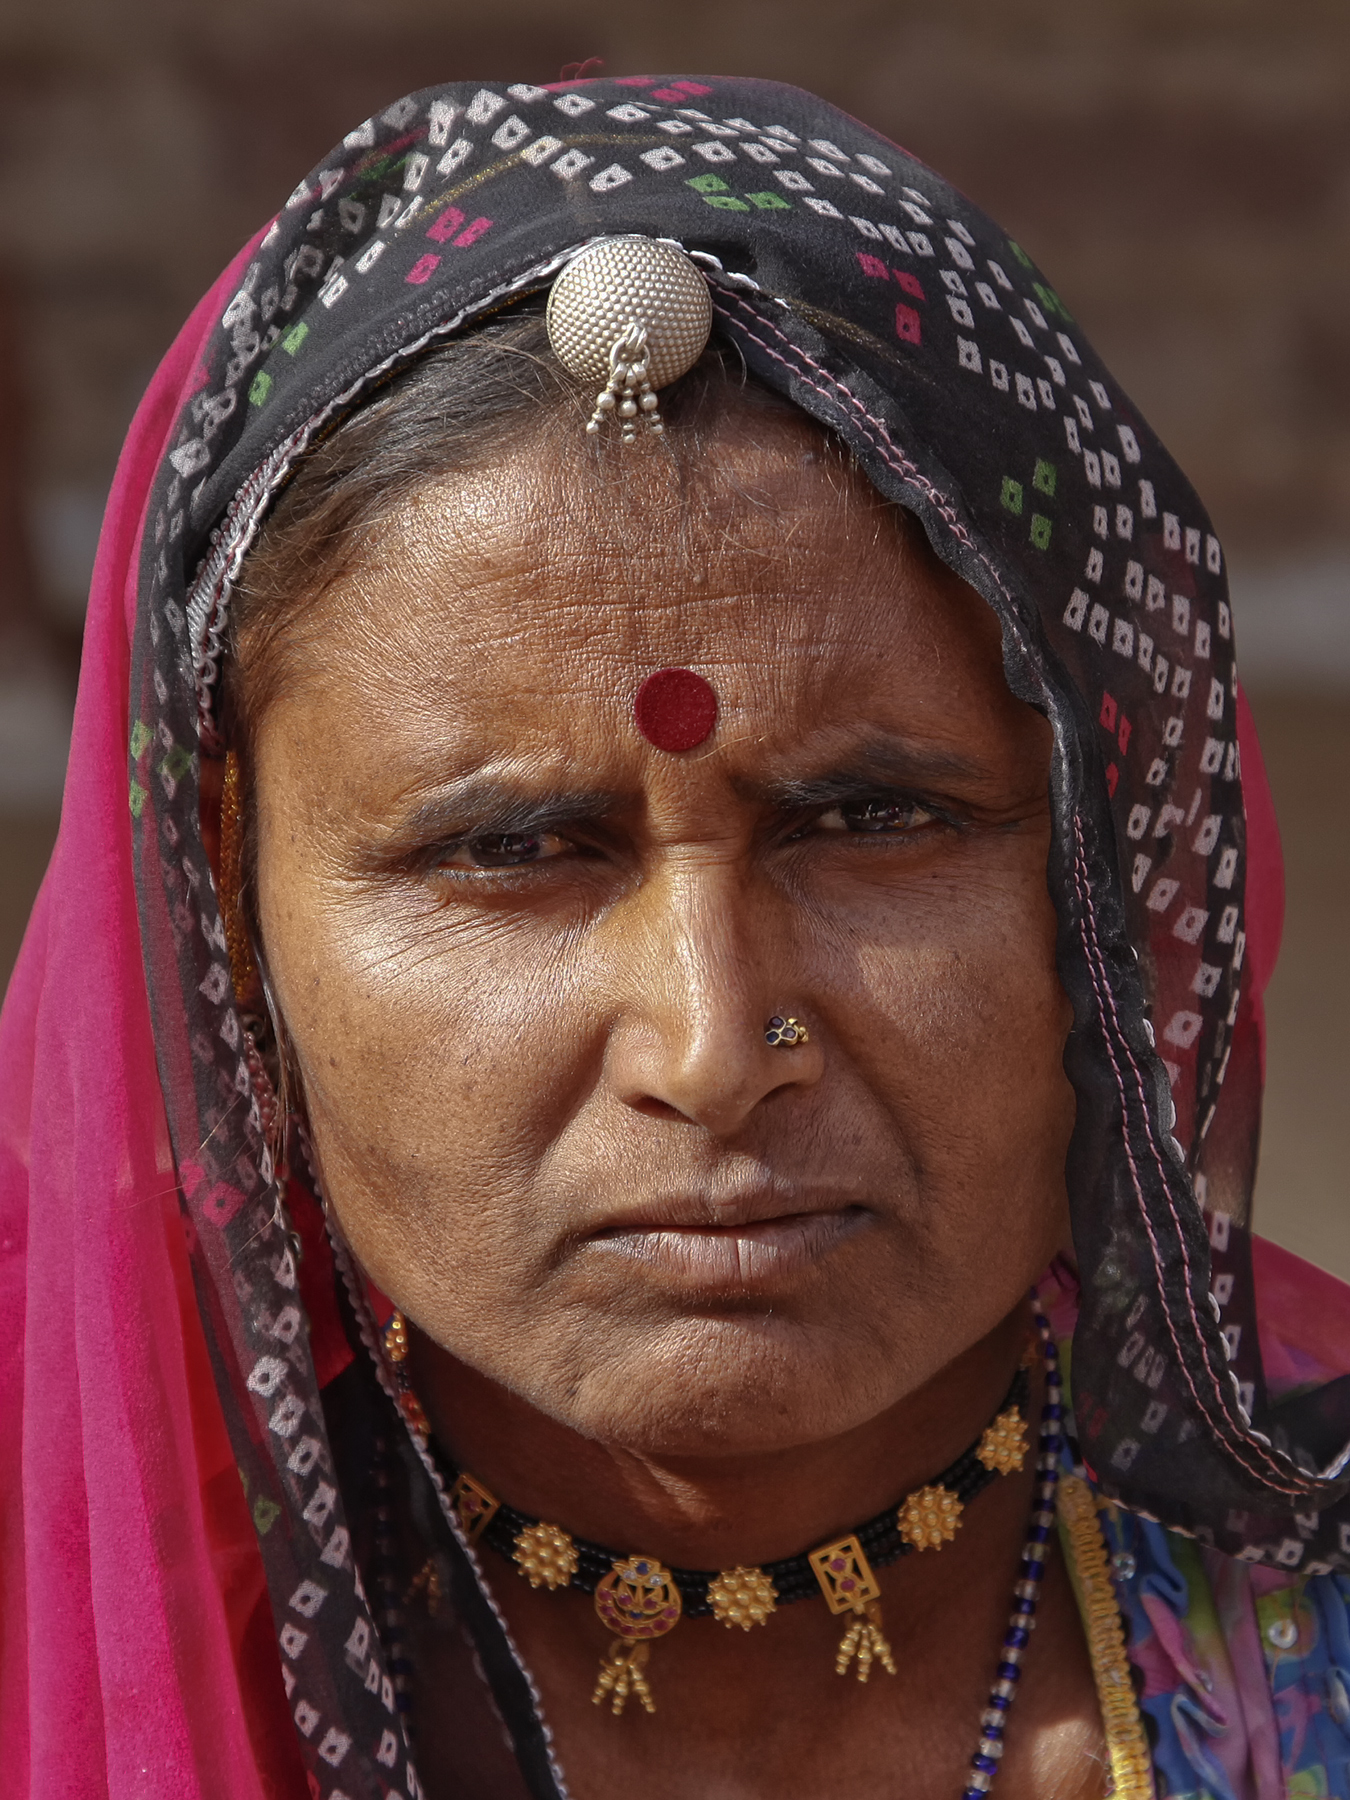 Brian_Jones_Women of India_Women of India - Rajasthan 4_5.jpg